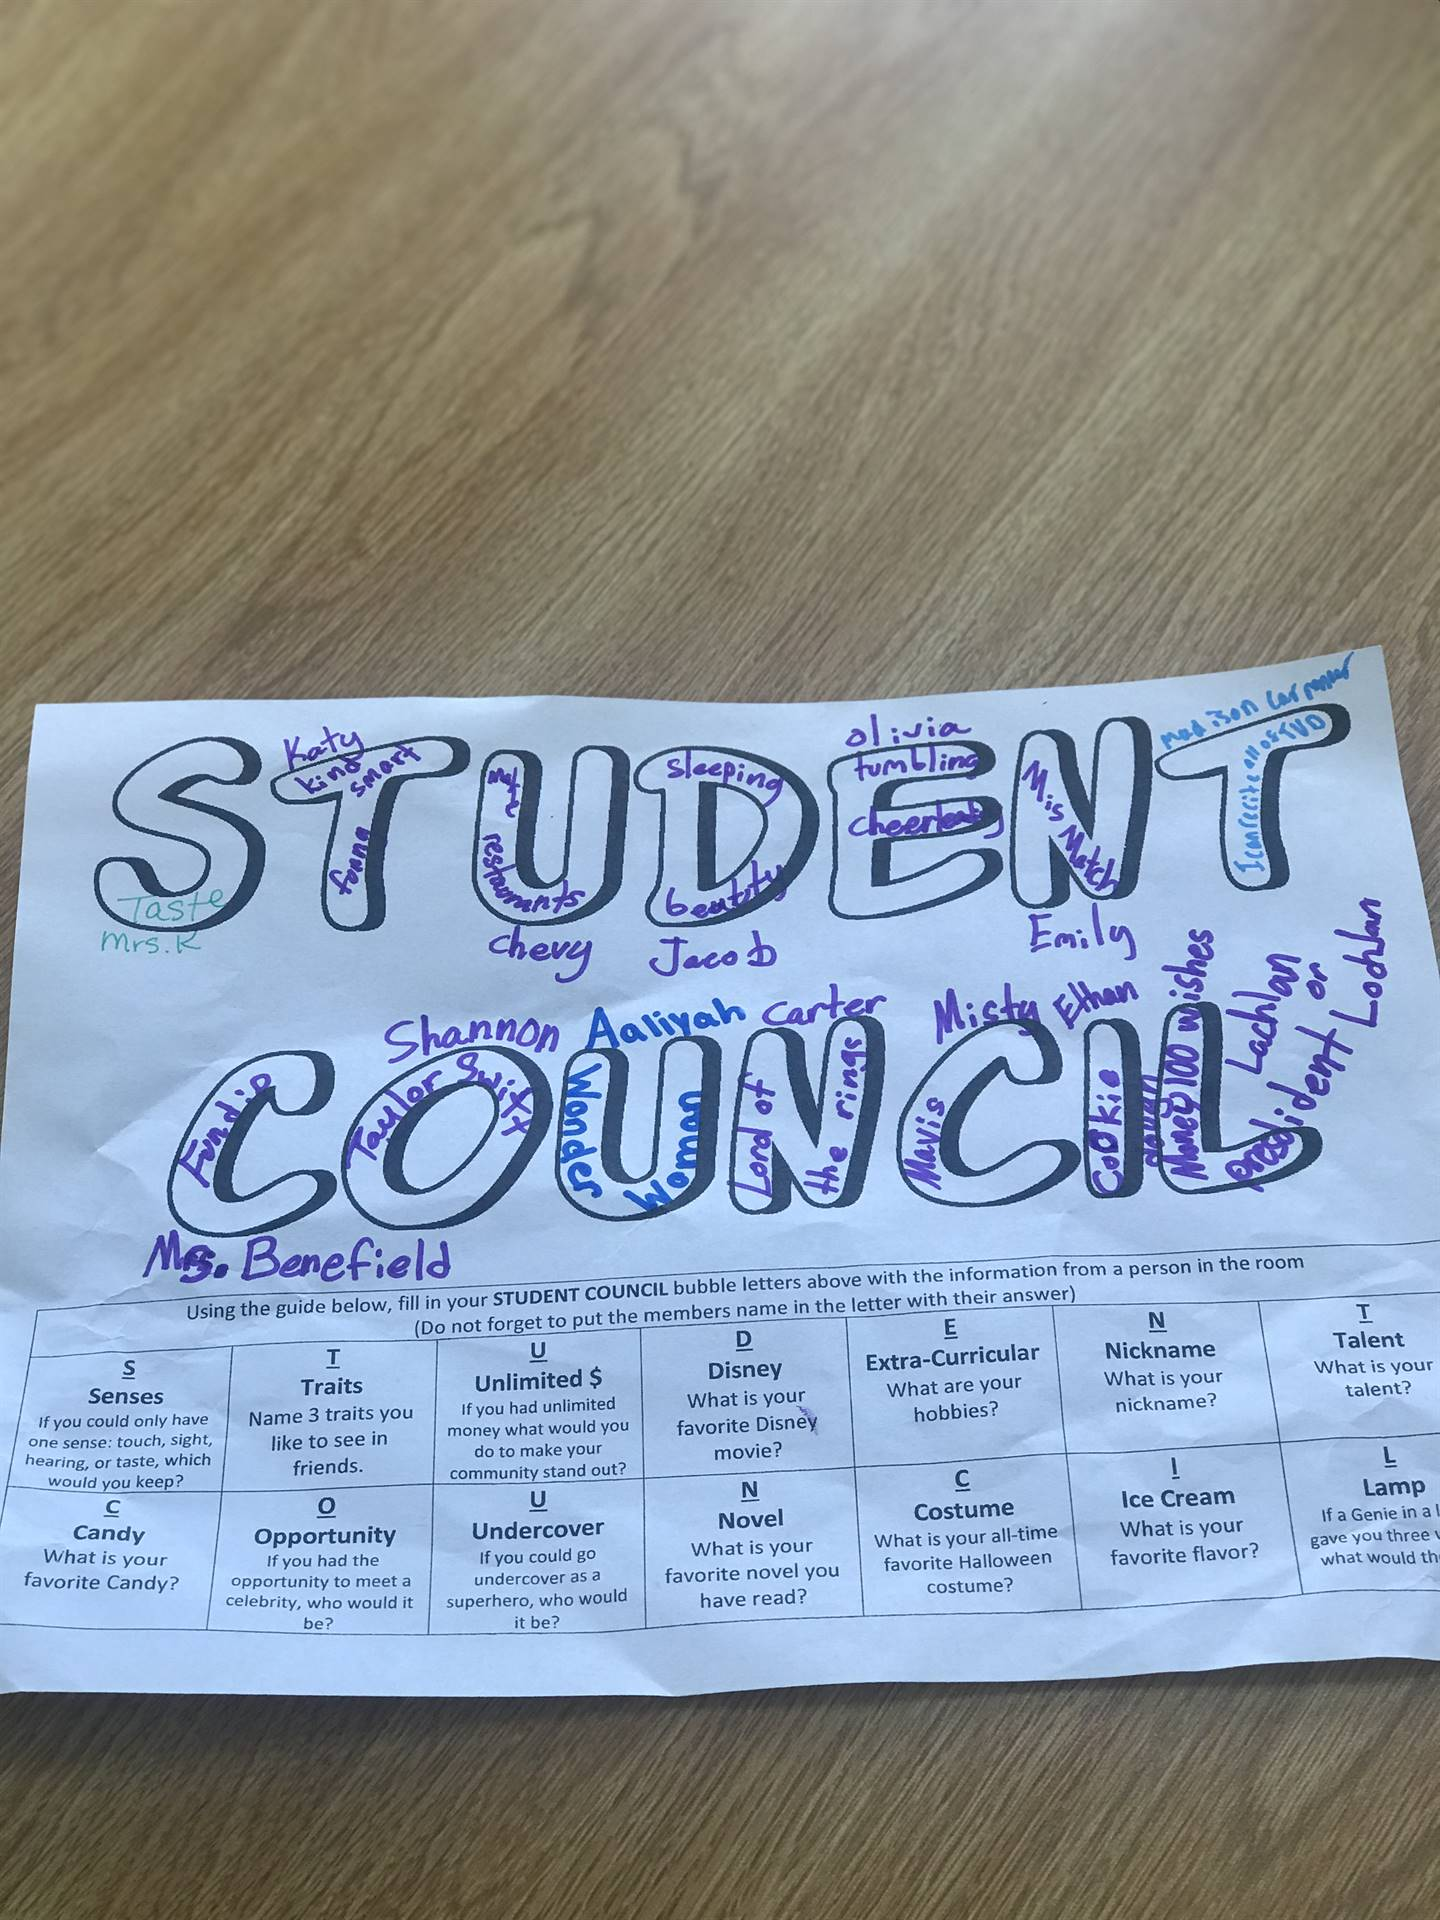 First Student Council meeting